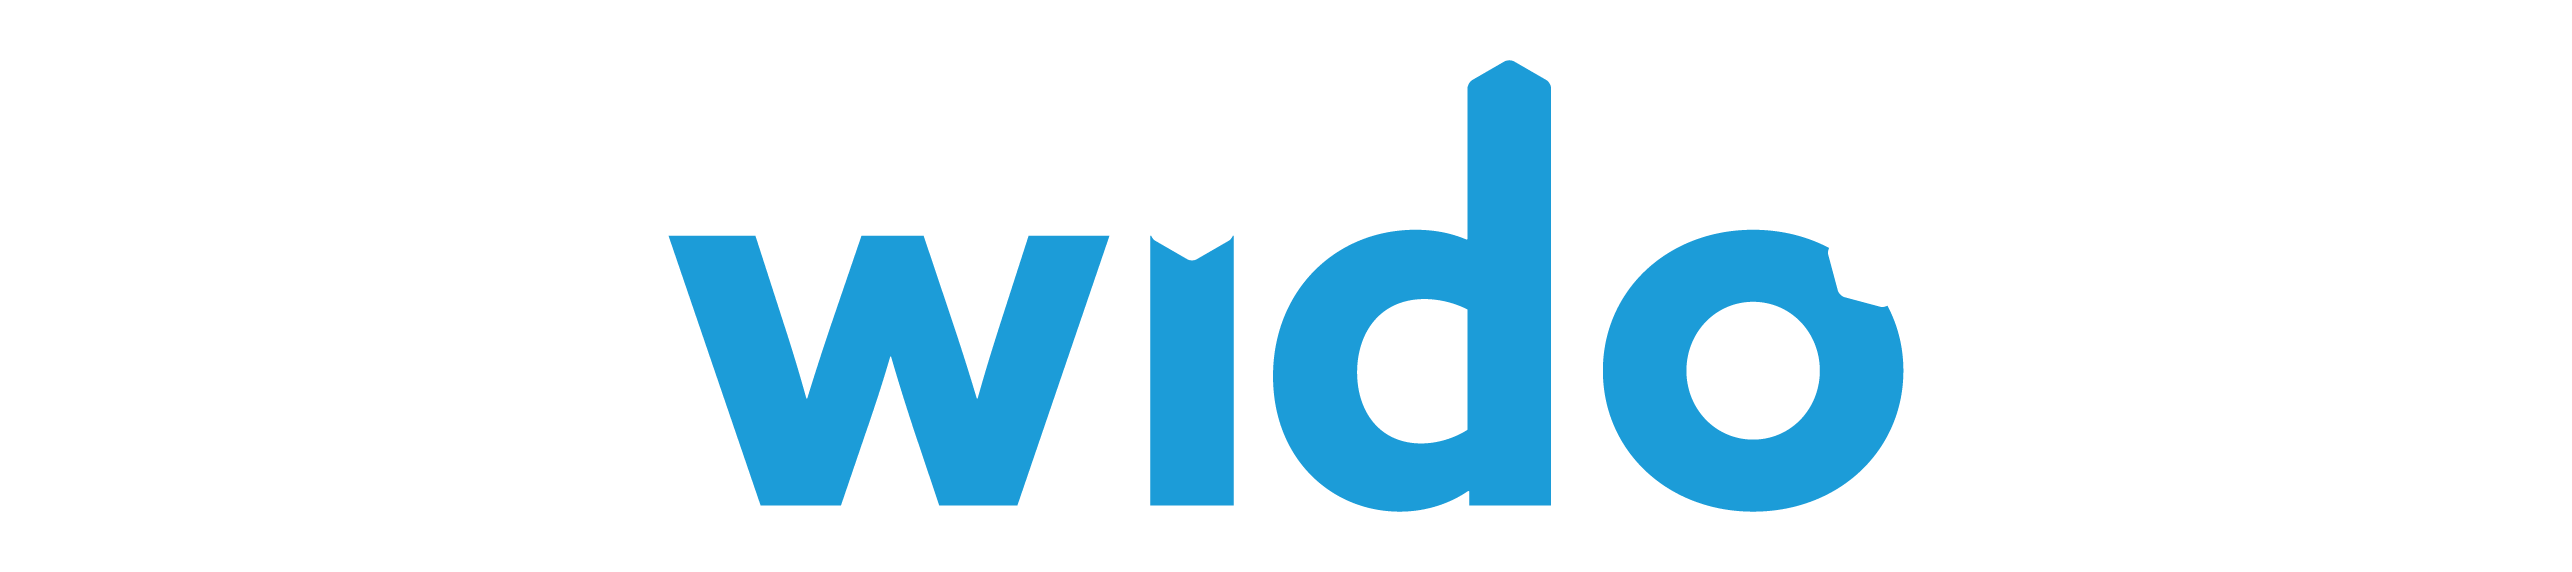 Read Wido Reviews